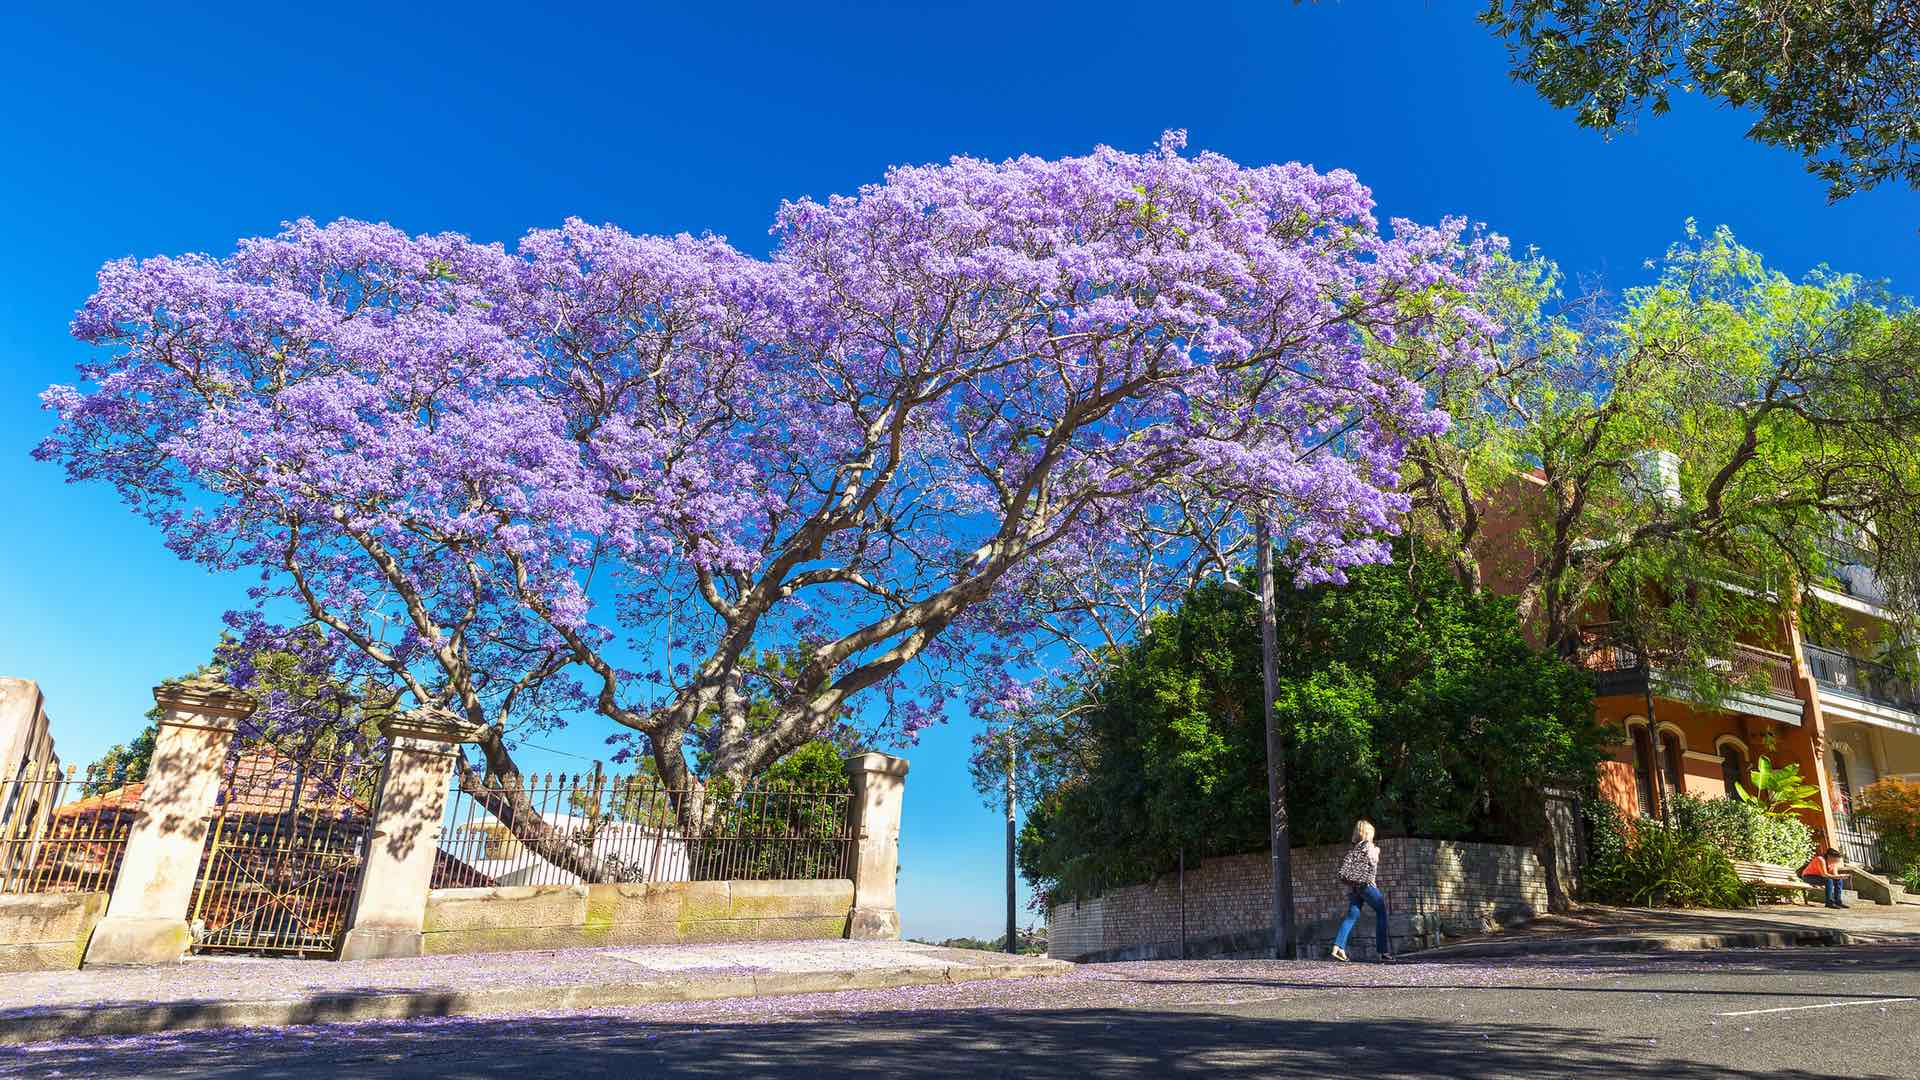 Sydney Is About to Be Shrouded in Purple Flowers as Jacaranda Season Returns